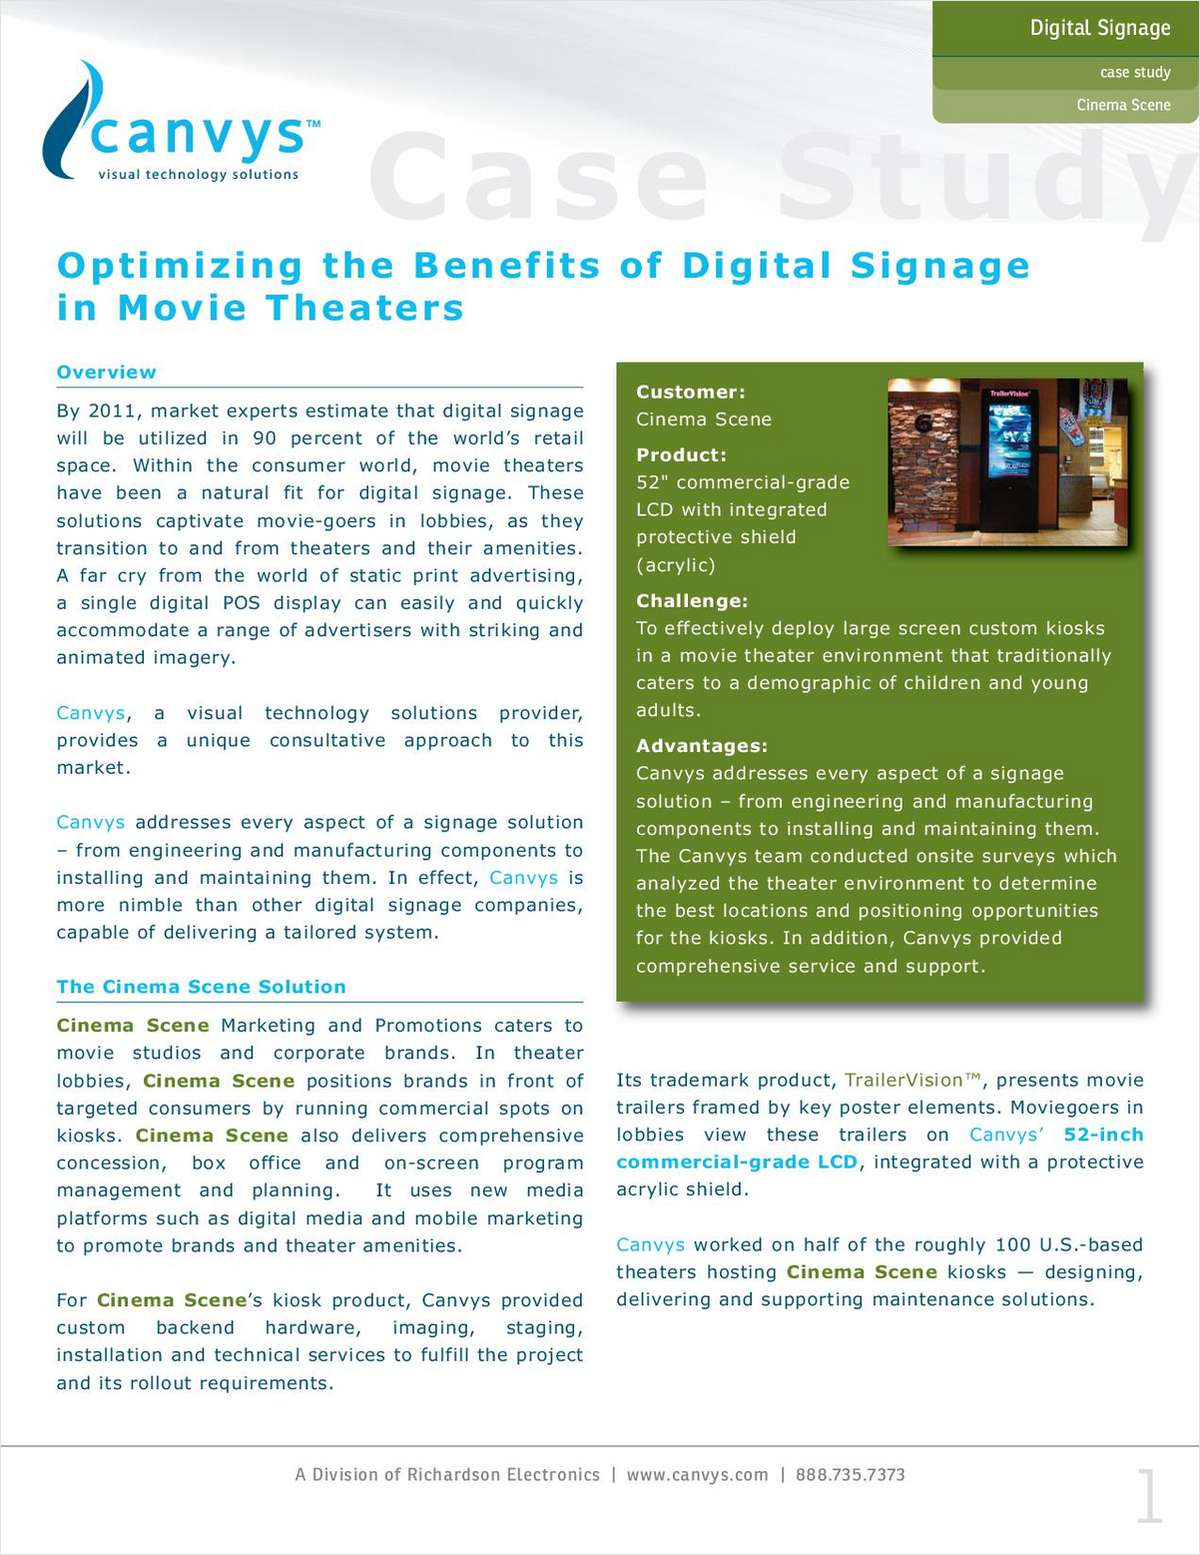 Canvys Case Study: Optimizing the Benefits of Digital Signage in Movie Theaters